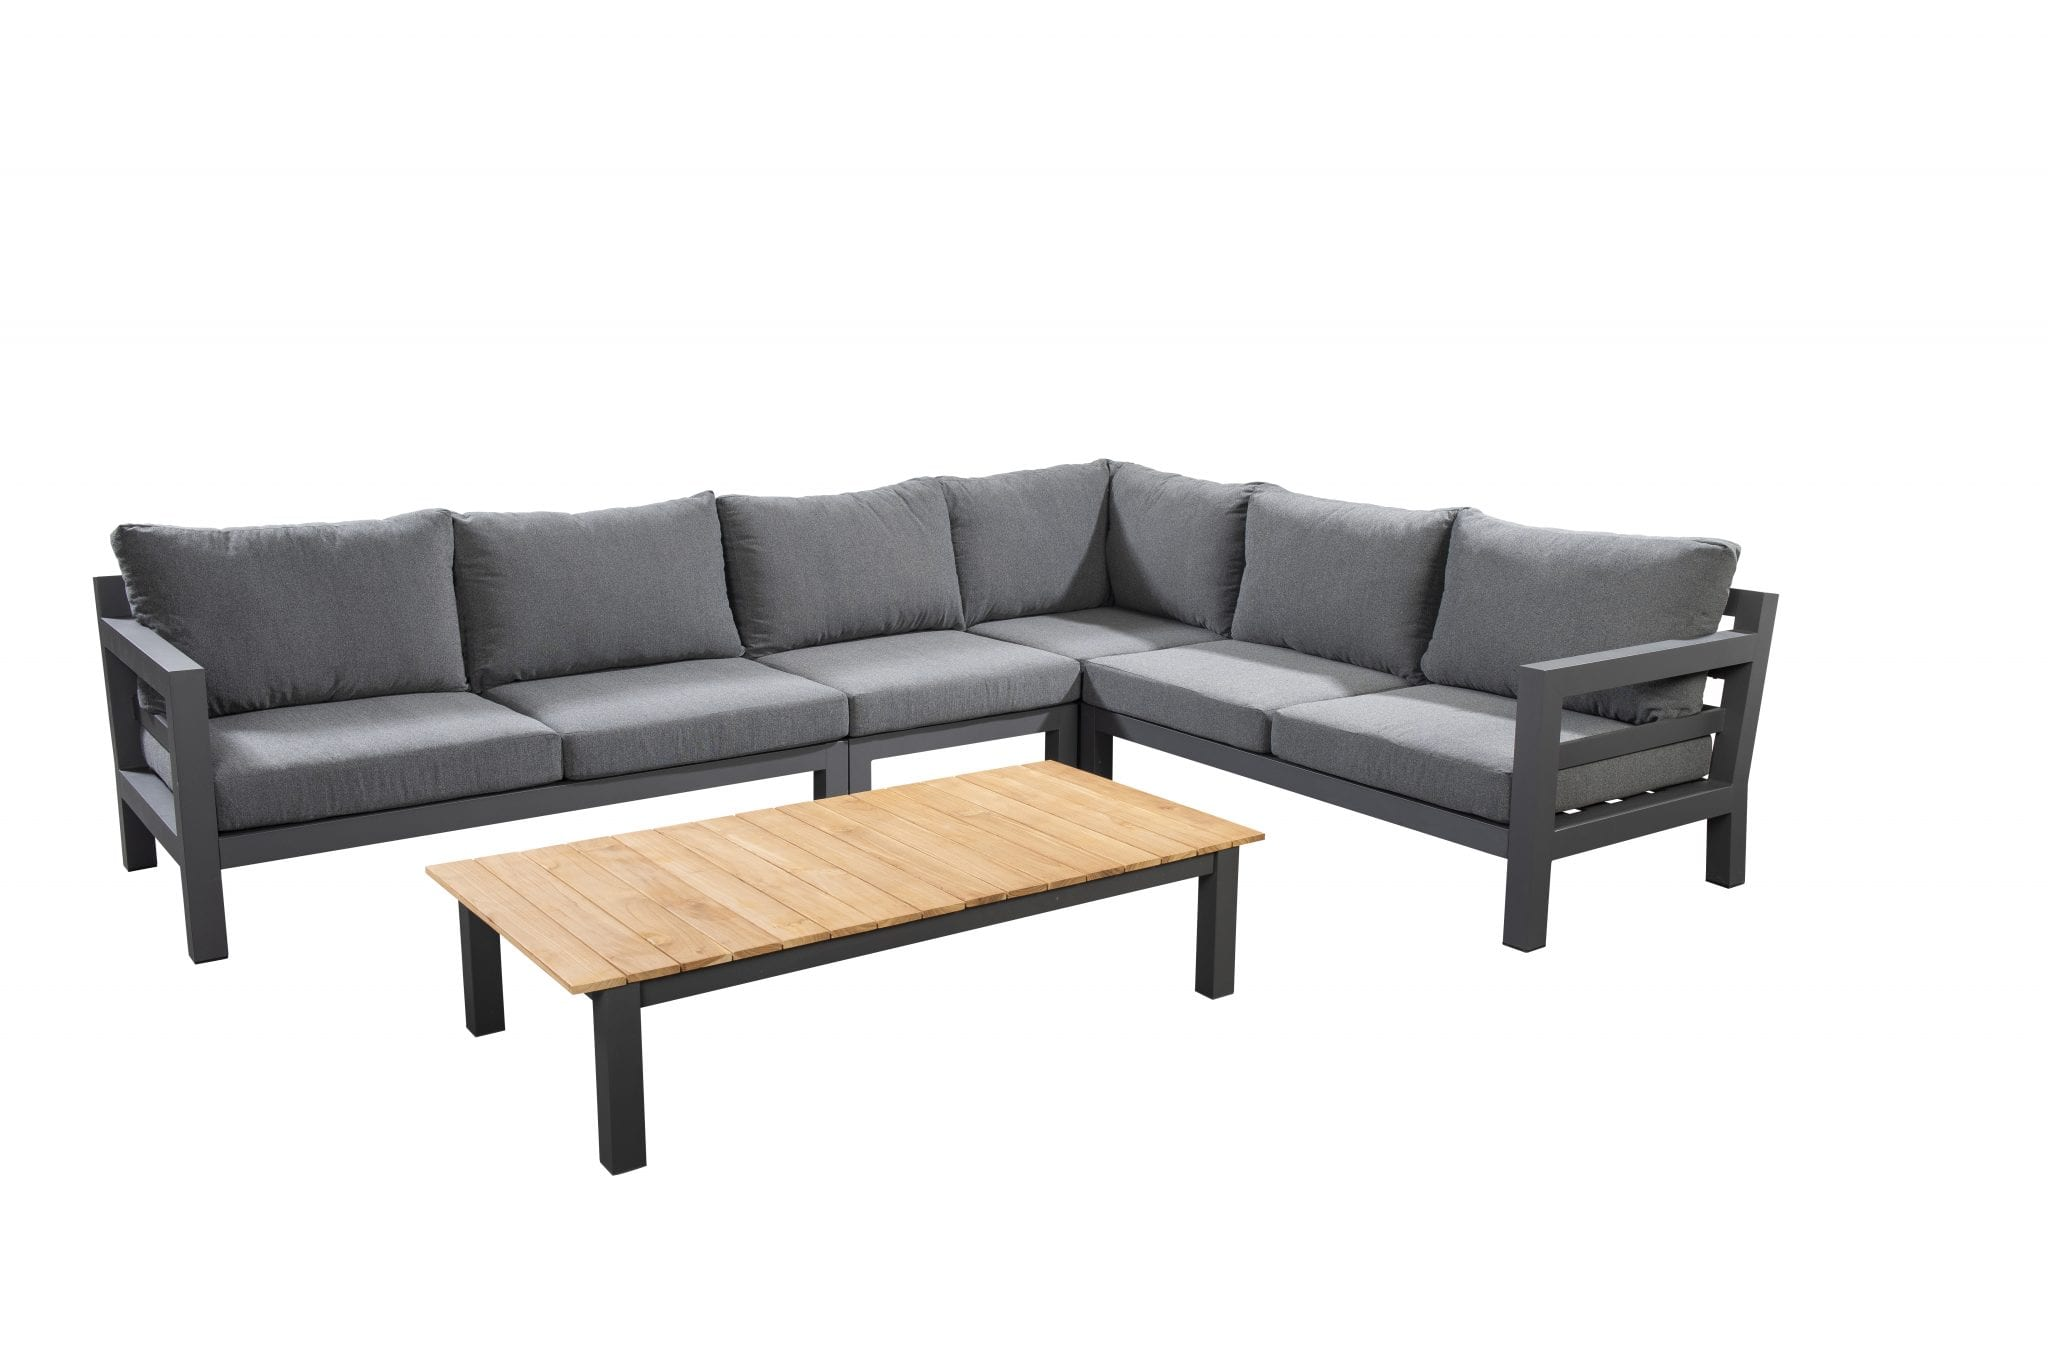 Midori chaise lounge left - right corner module middle module with 140x75 coffee table - dark grey | Yoi Furniture